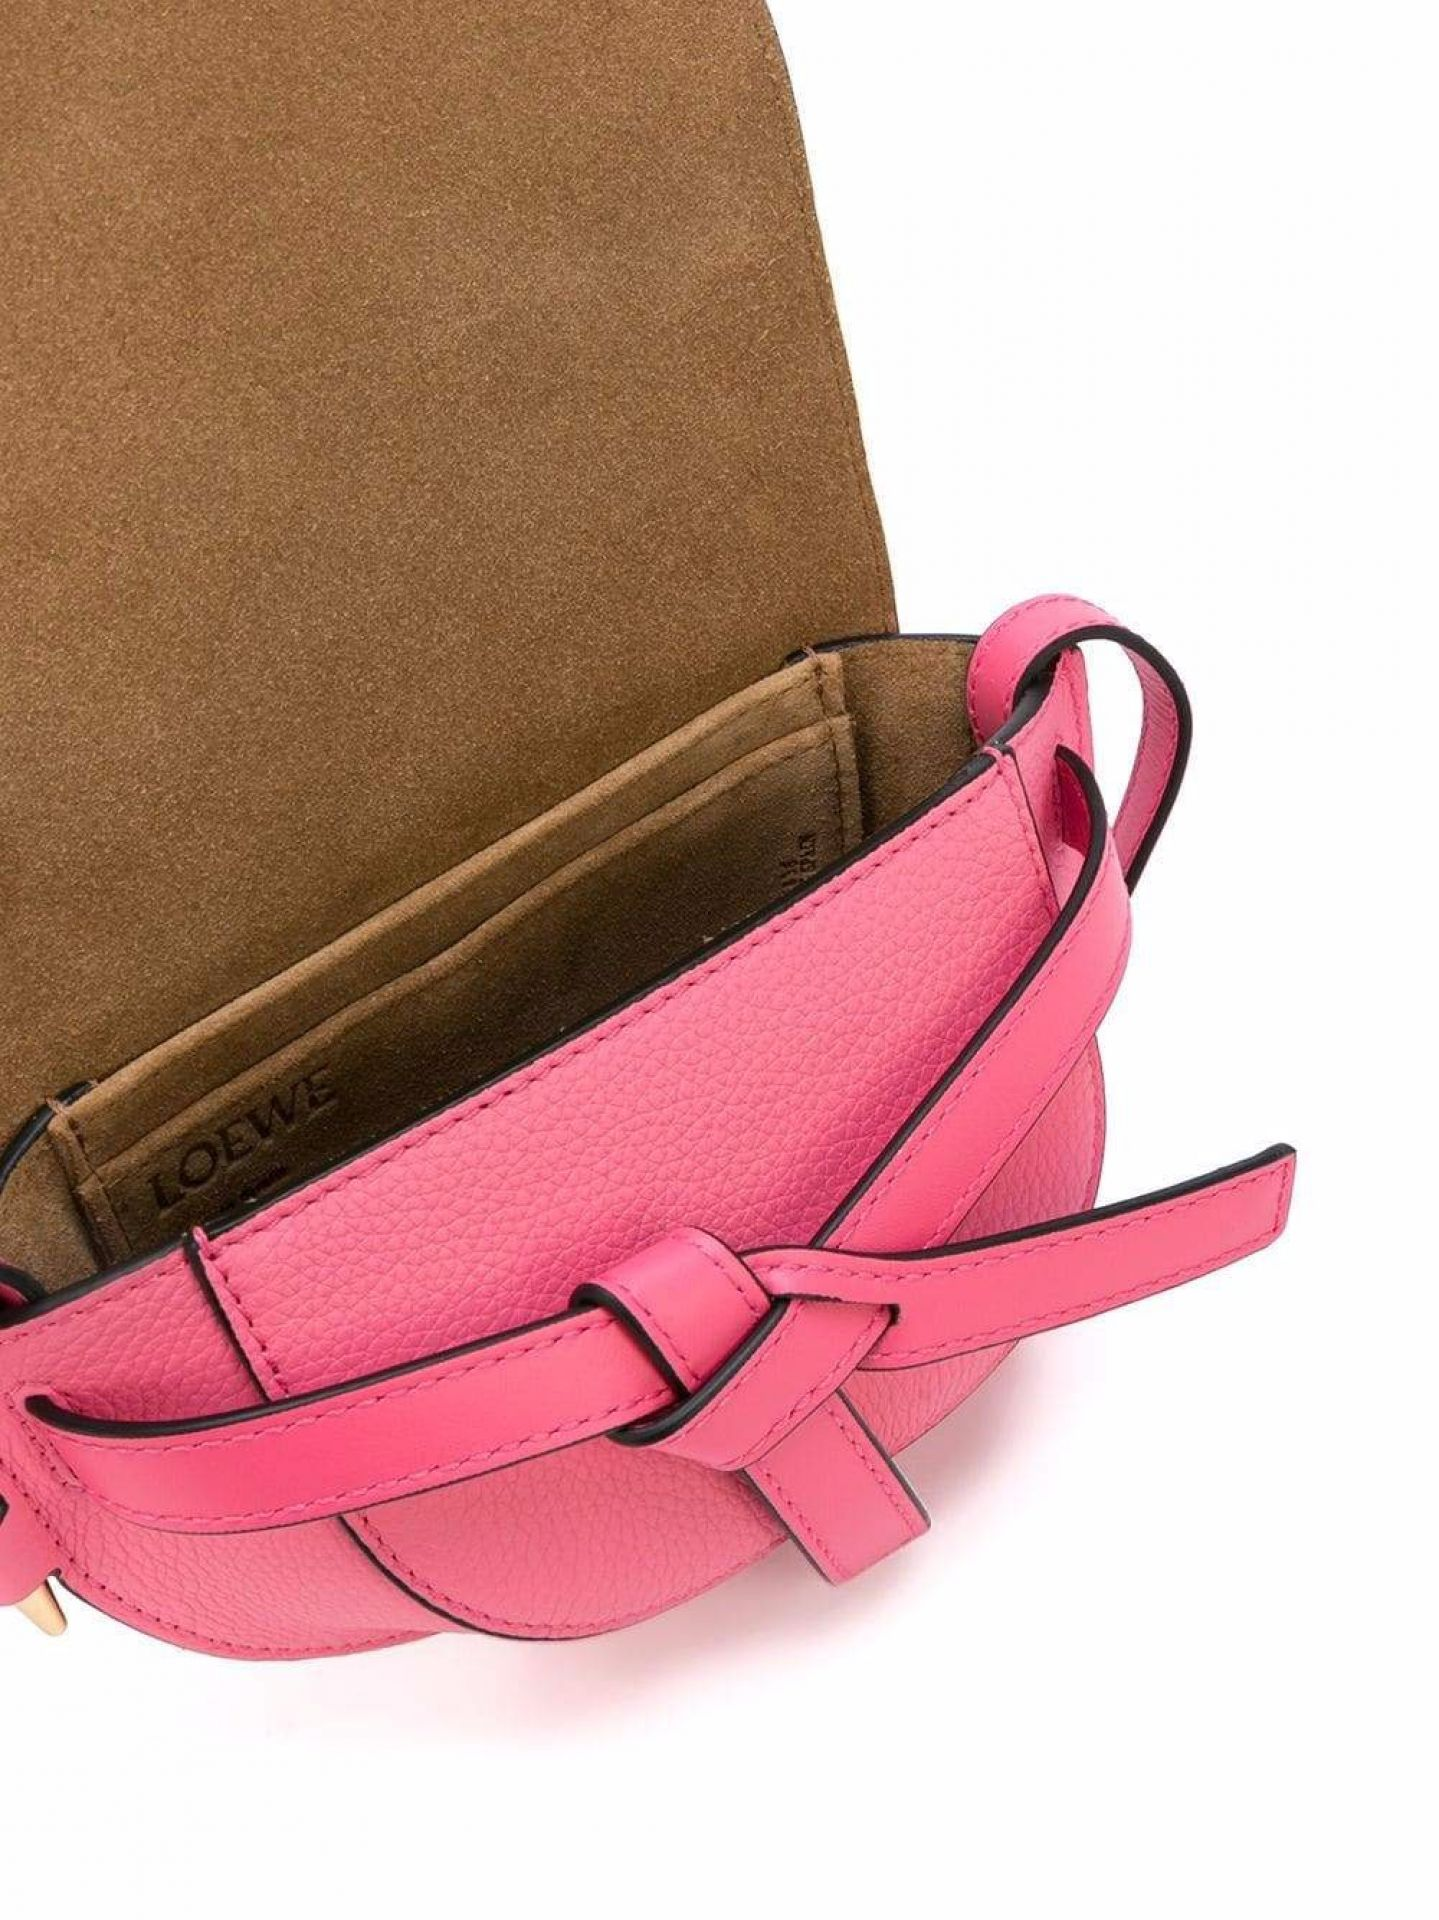 LOEWE WOMENS WILD ROSE PINK LEATHER GATE MINI SHOULDER BAG